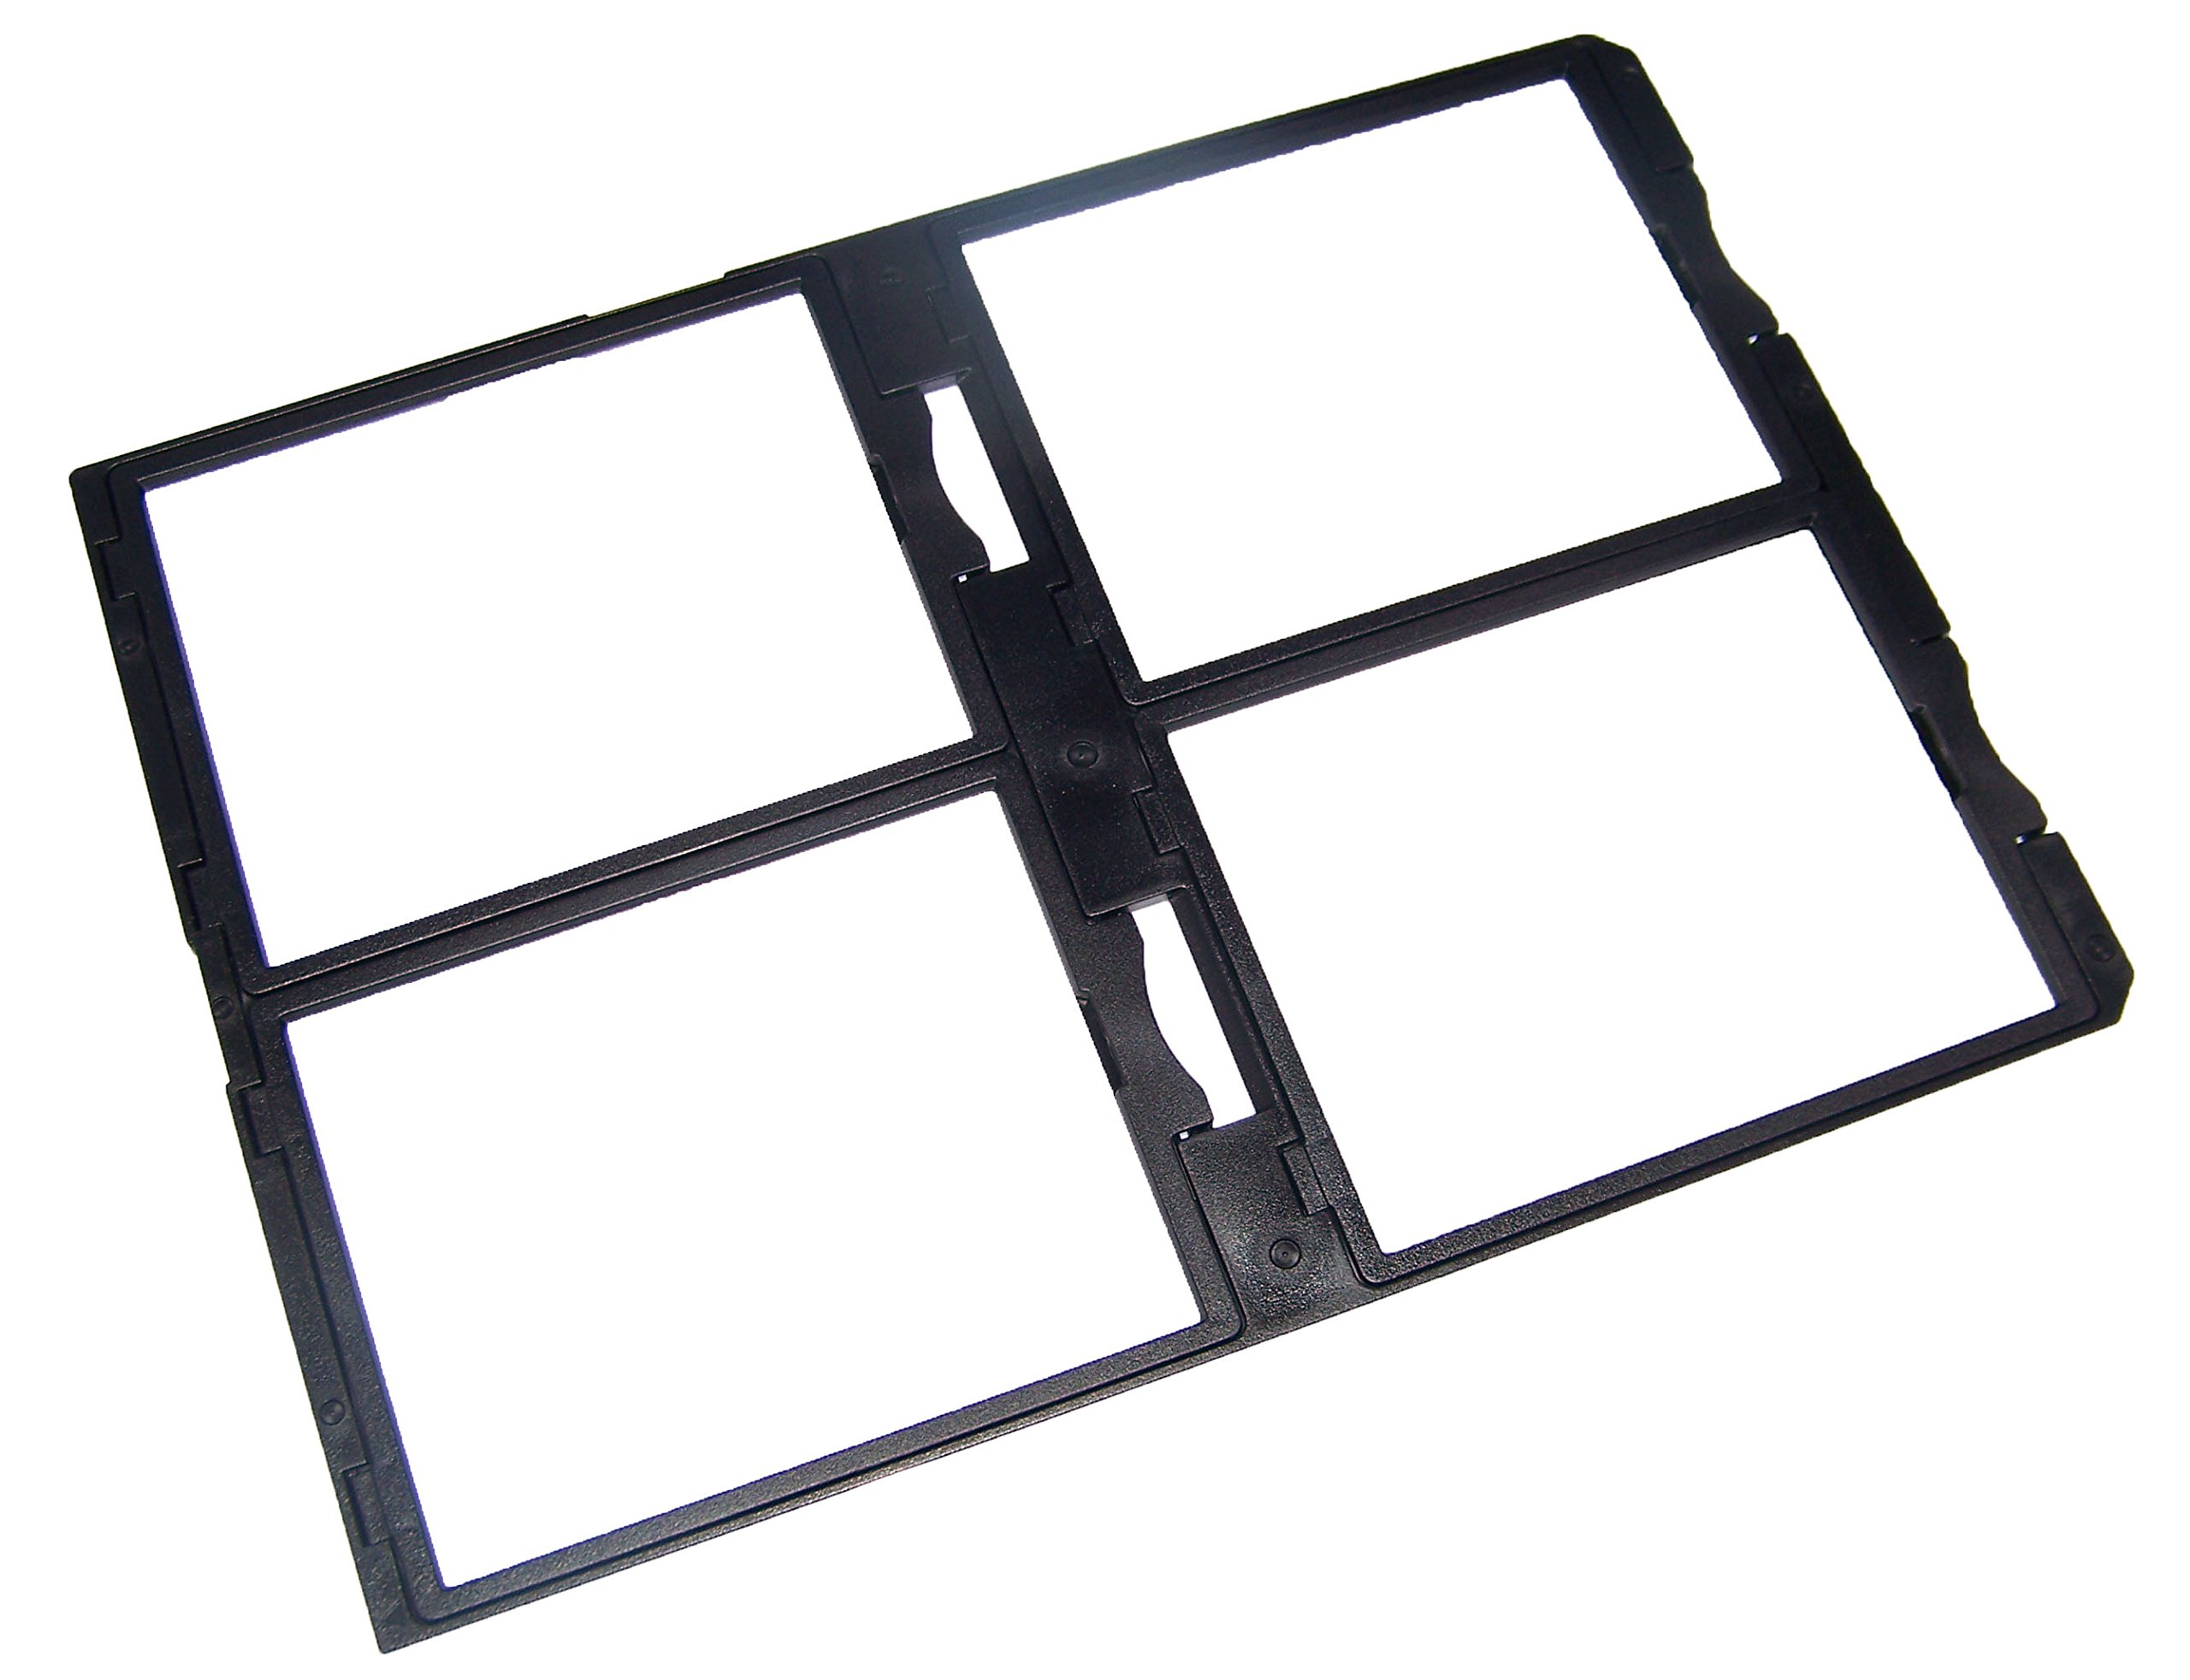 OEM Epson 4x5 Film Holder for Epson Originally Shipped with Expression 1600, Expression 1640XL, Expression 1680